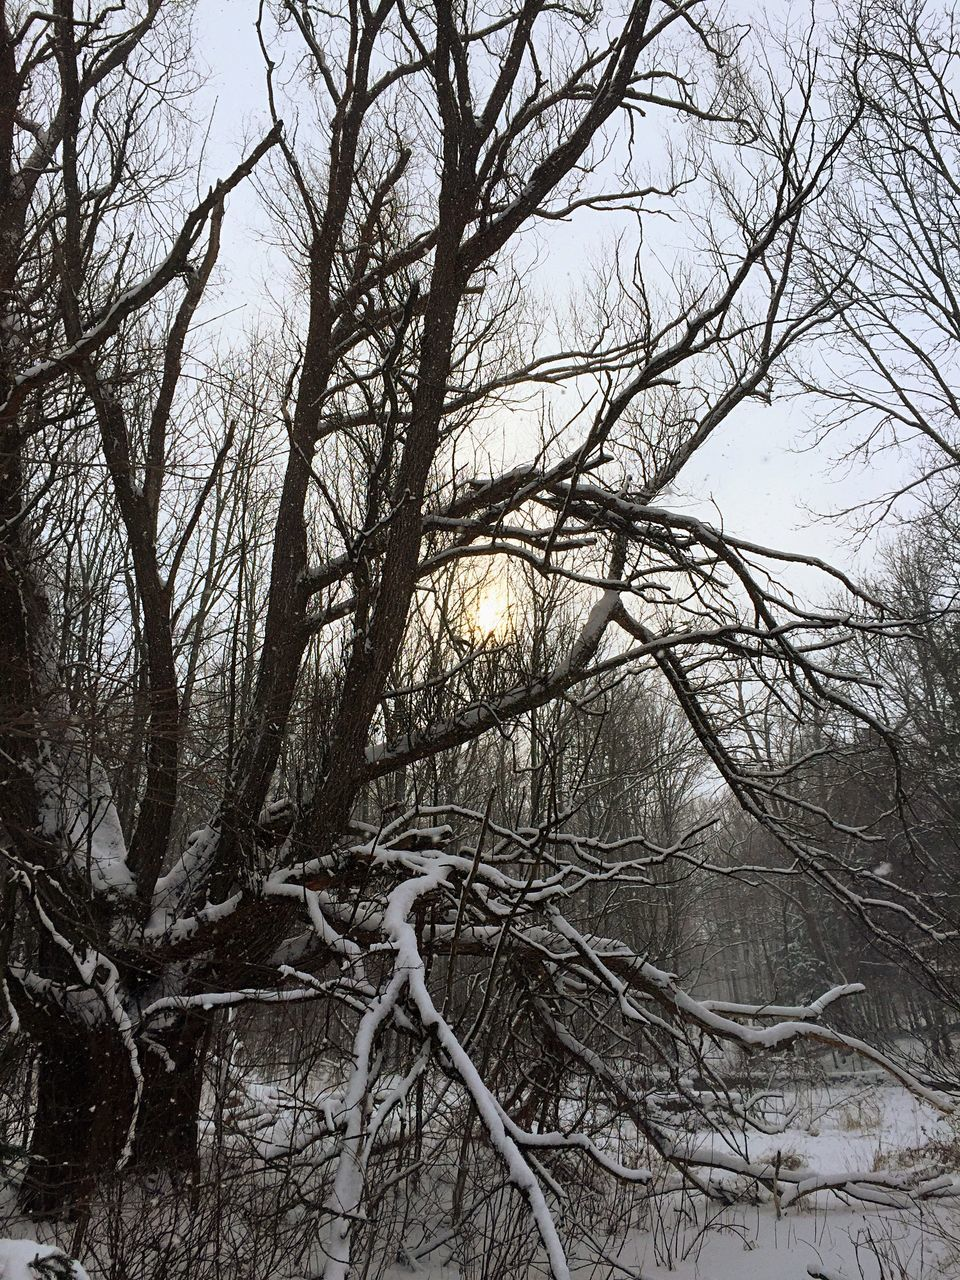 bare tree, tree, branch, winter, nature, no people, outdoors, snow, low angle view, forest, tranquility, beauty in nature, cold temperature, day, sky